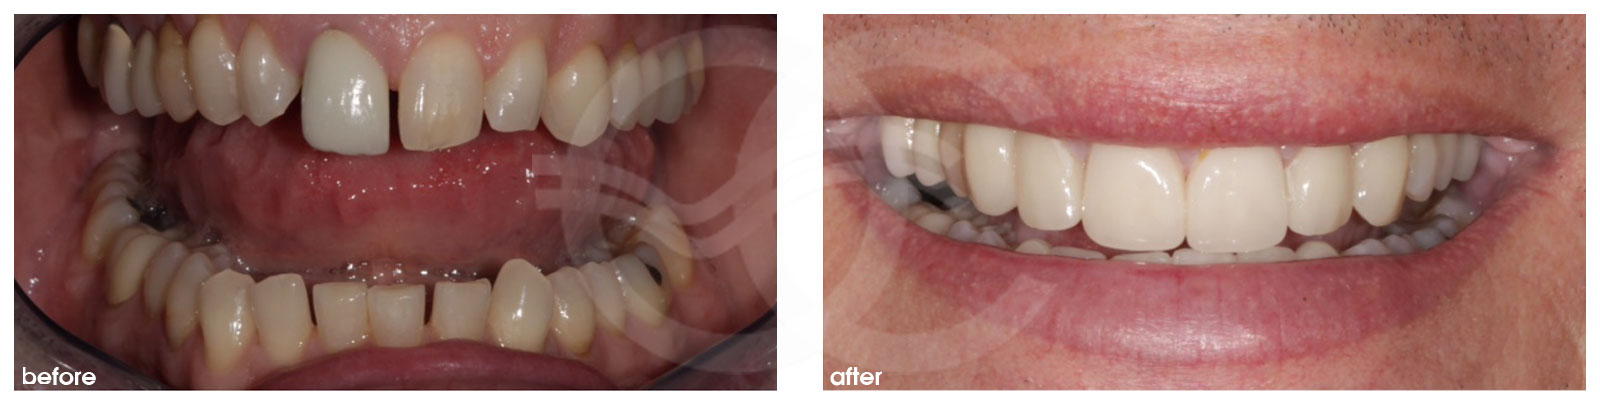 Cosmetic Dentistry Before After Porcelain Veneers. Photo frontal Ocean Clinic Marbella Spain